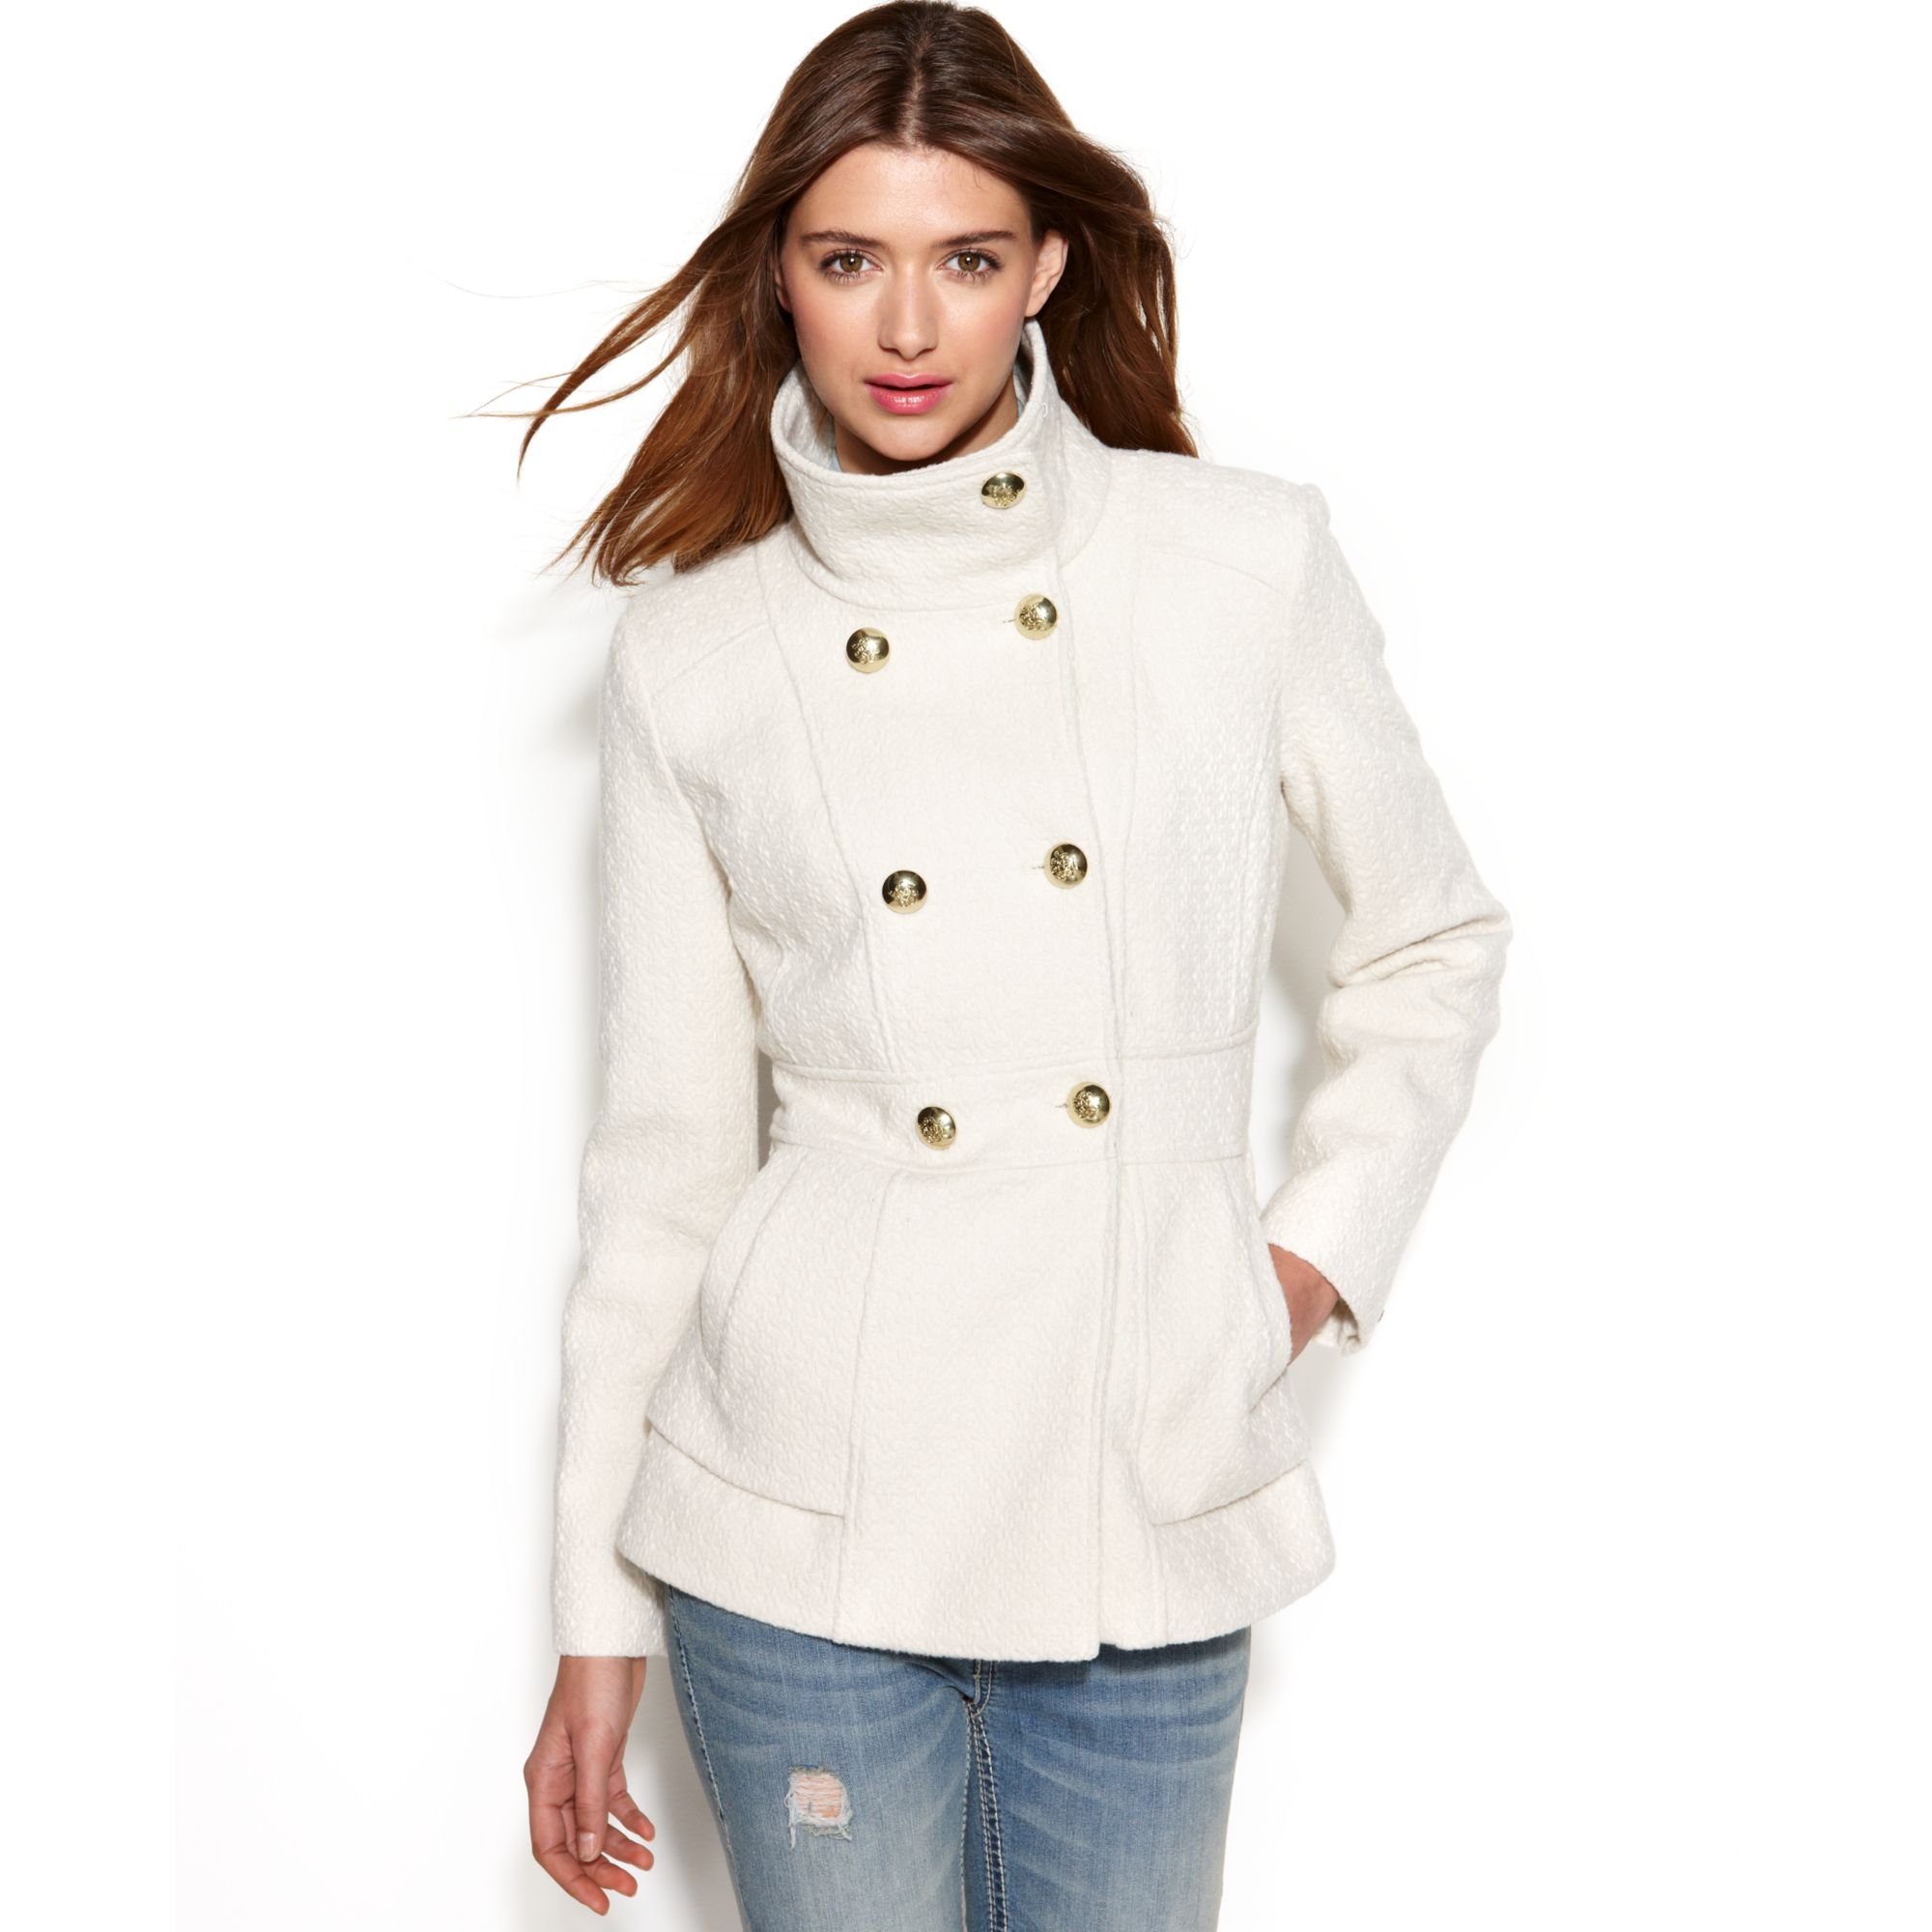 46cbbf02b16 Lyst - Jessica Simpson Double Breasted Boucle Peacoat in White